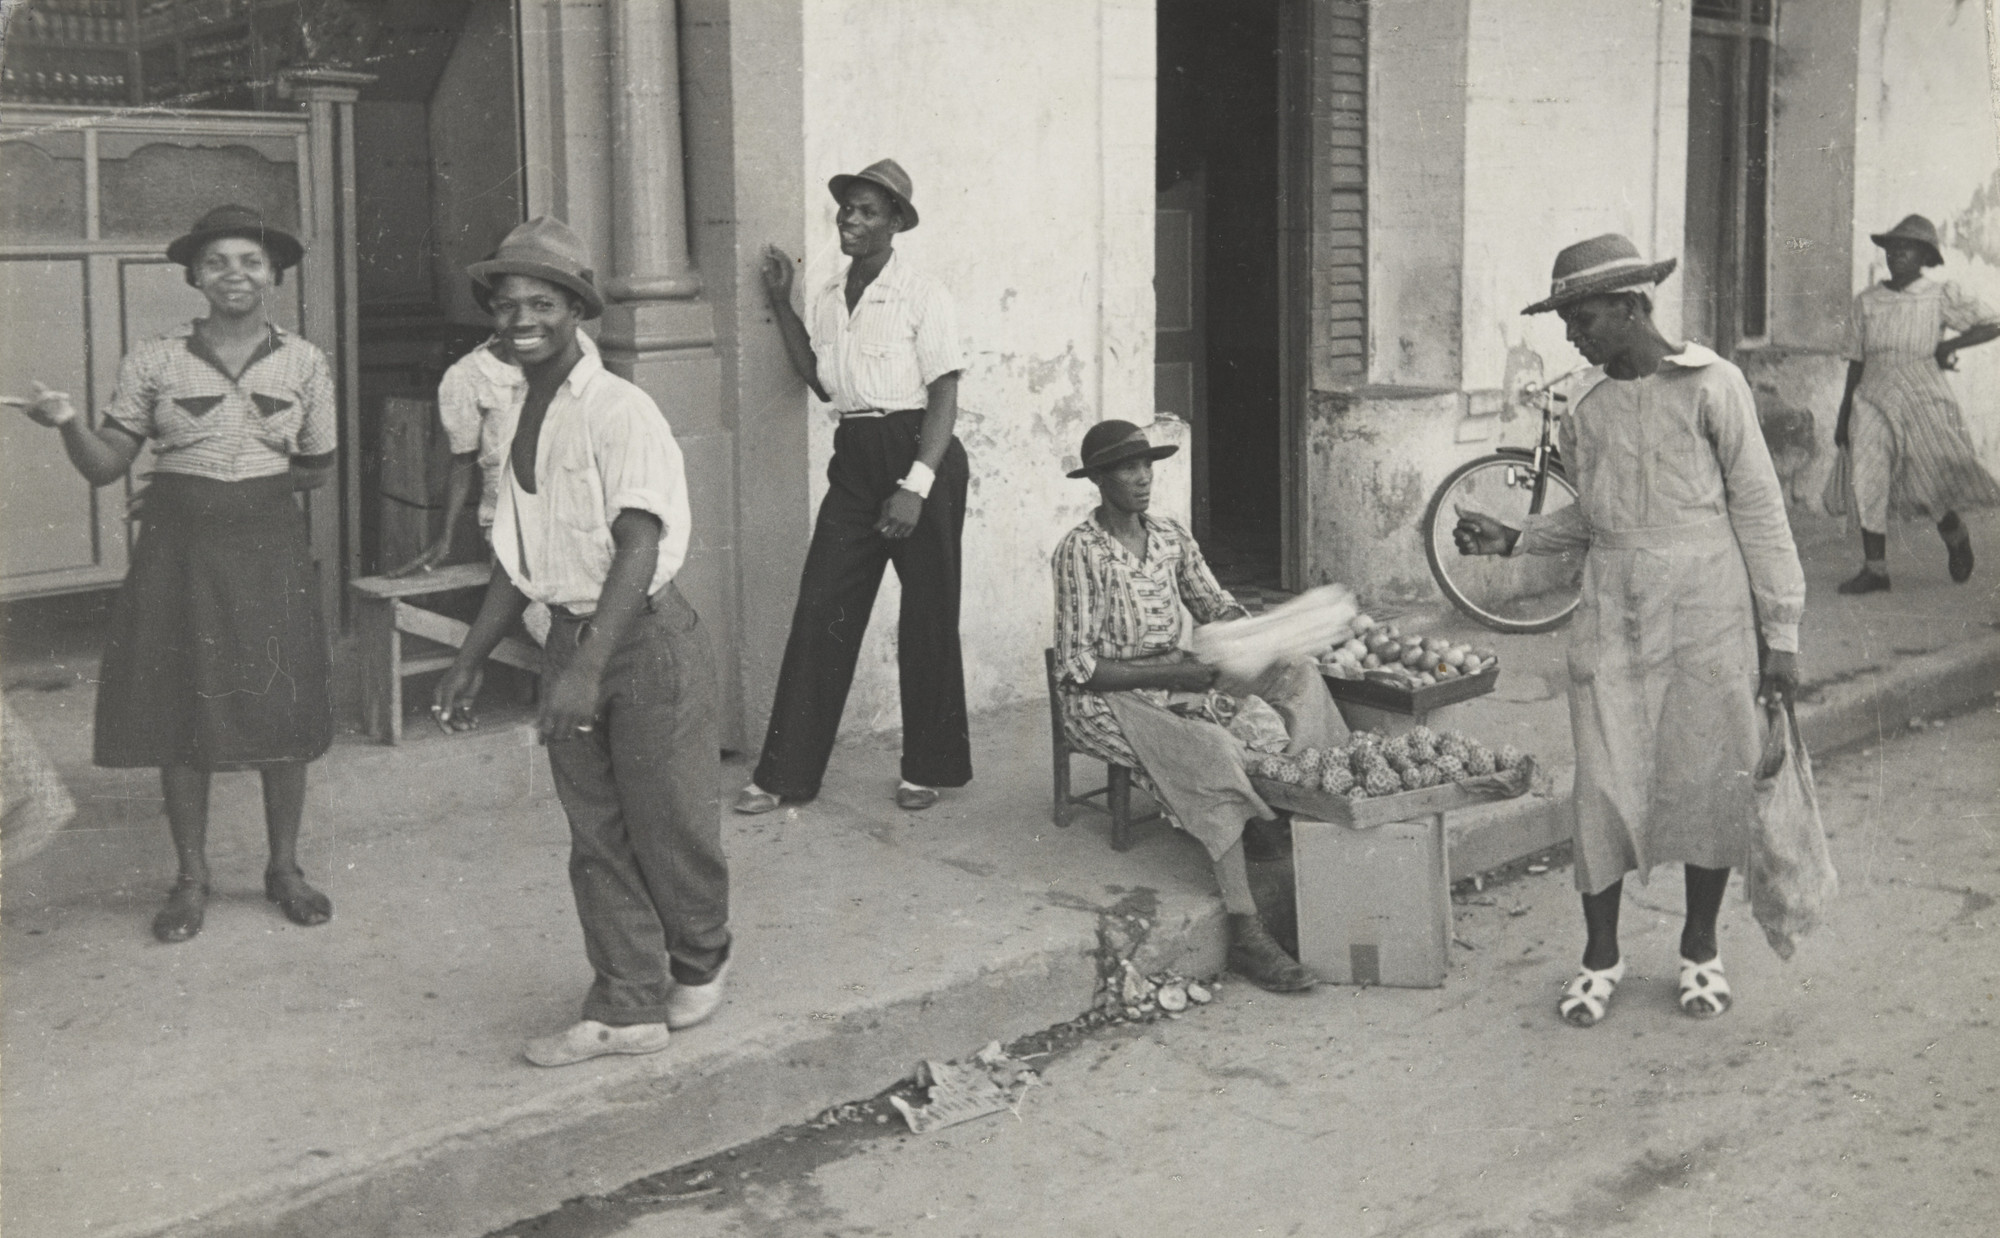 Rudy Burckhardt. Port of Spain, Trinidad. 1942